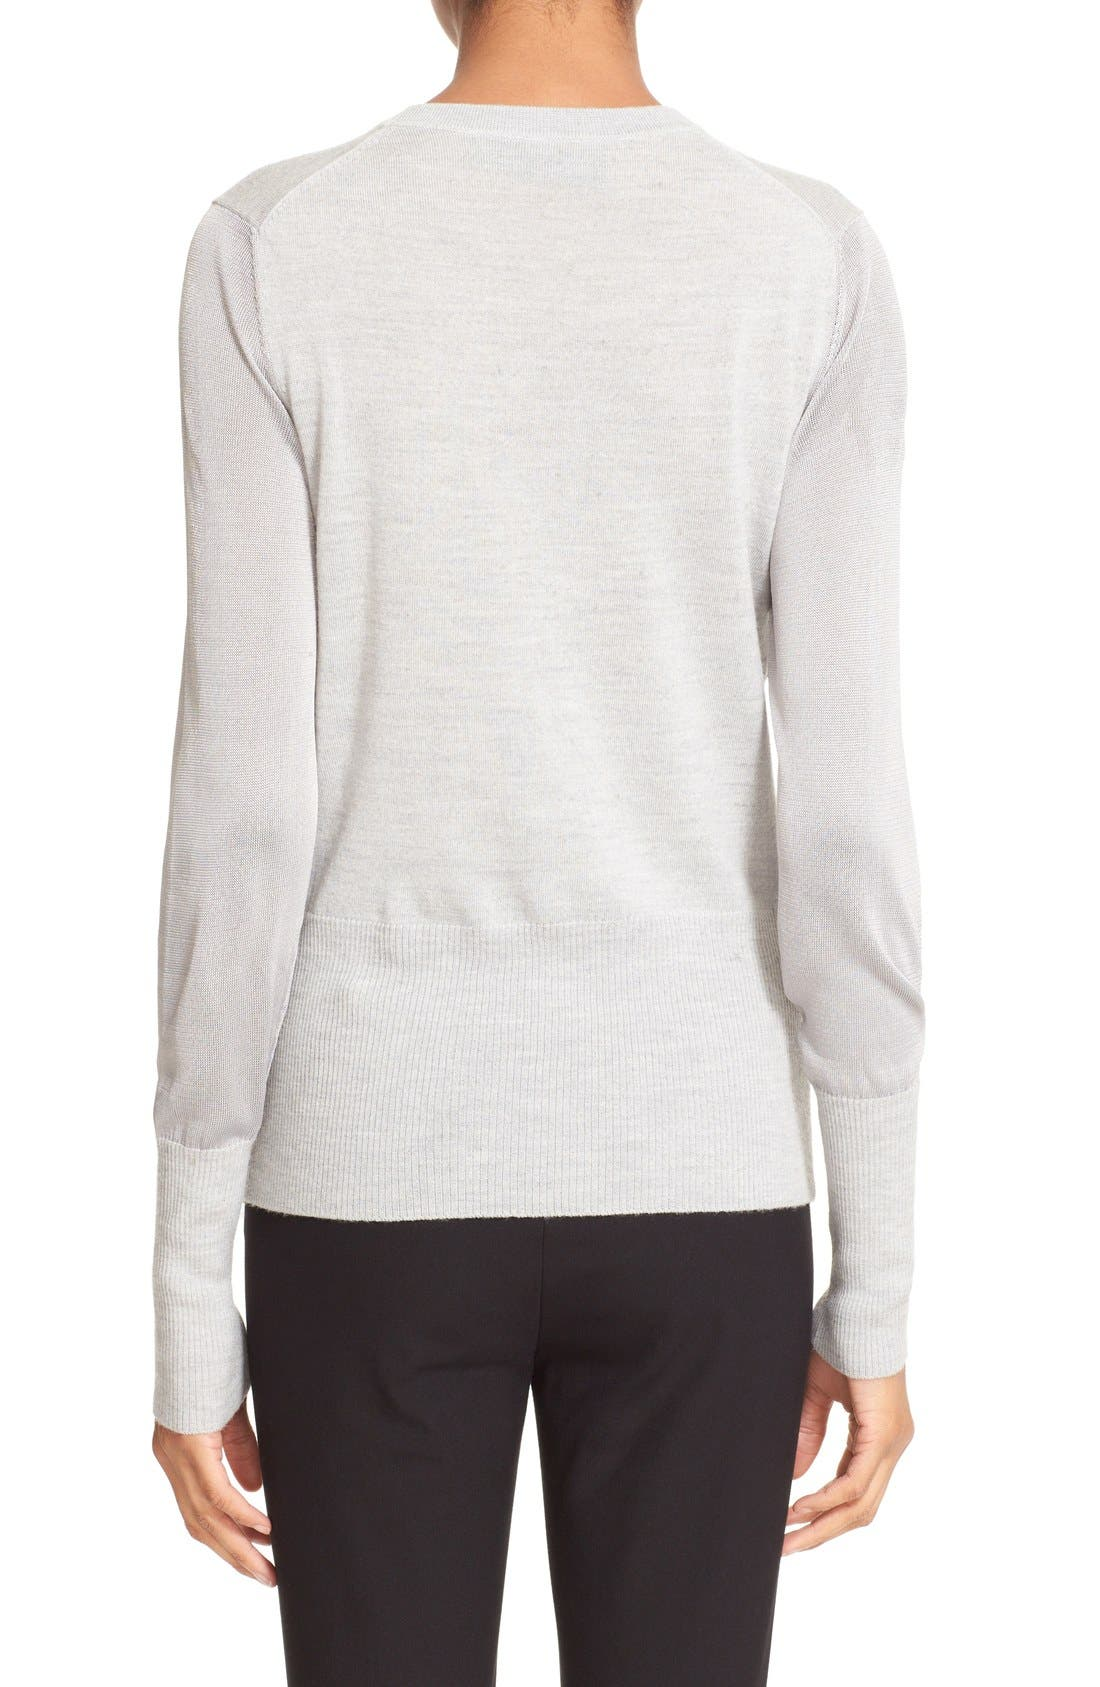 RAG & BONE,                             'Marissa' Merino Wool Crewneck Sweater,                             Alternate thumbnail 4, color,                             020